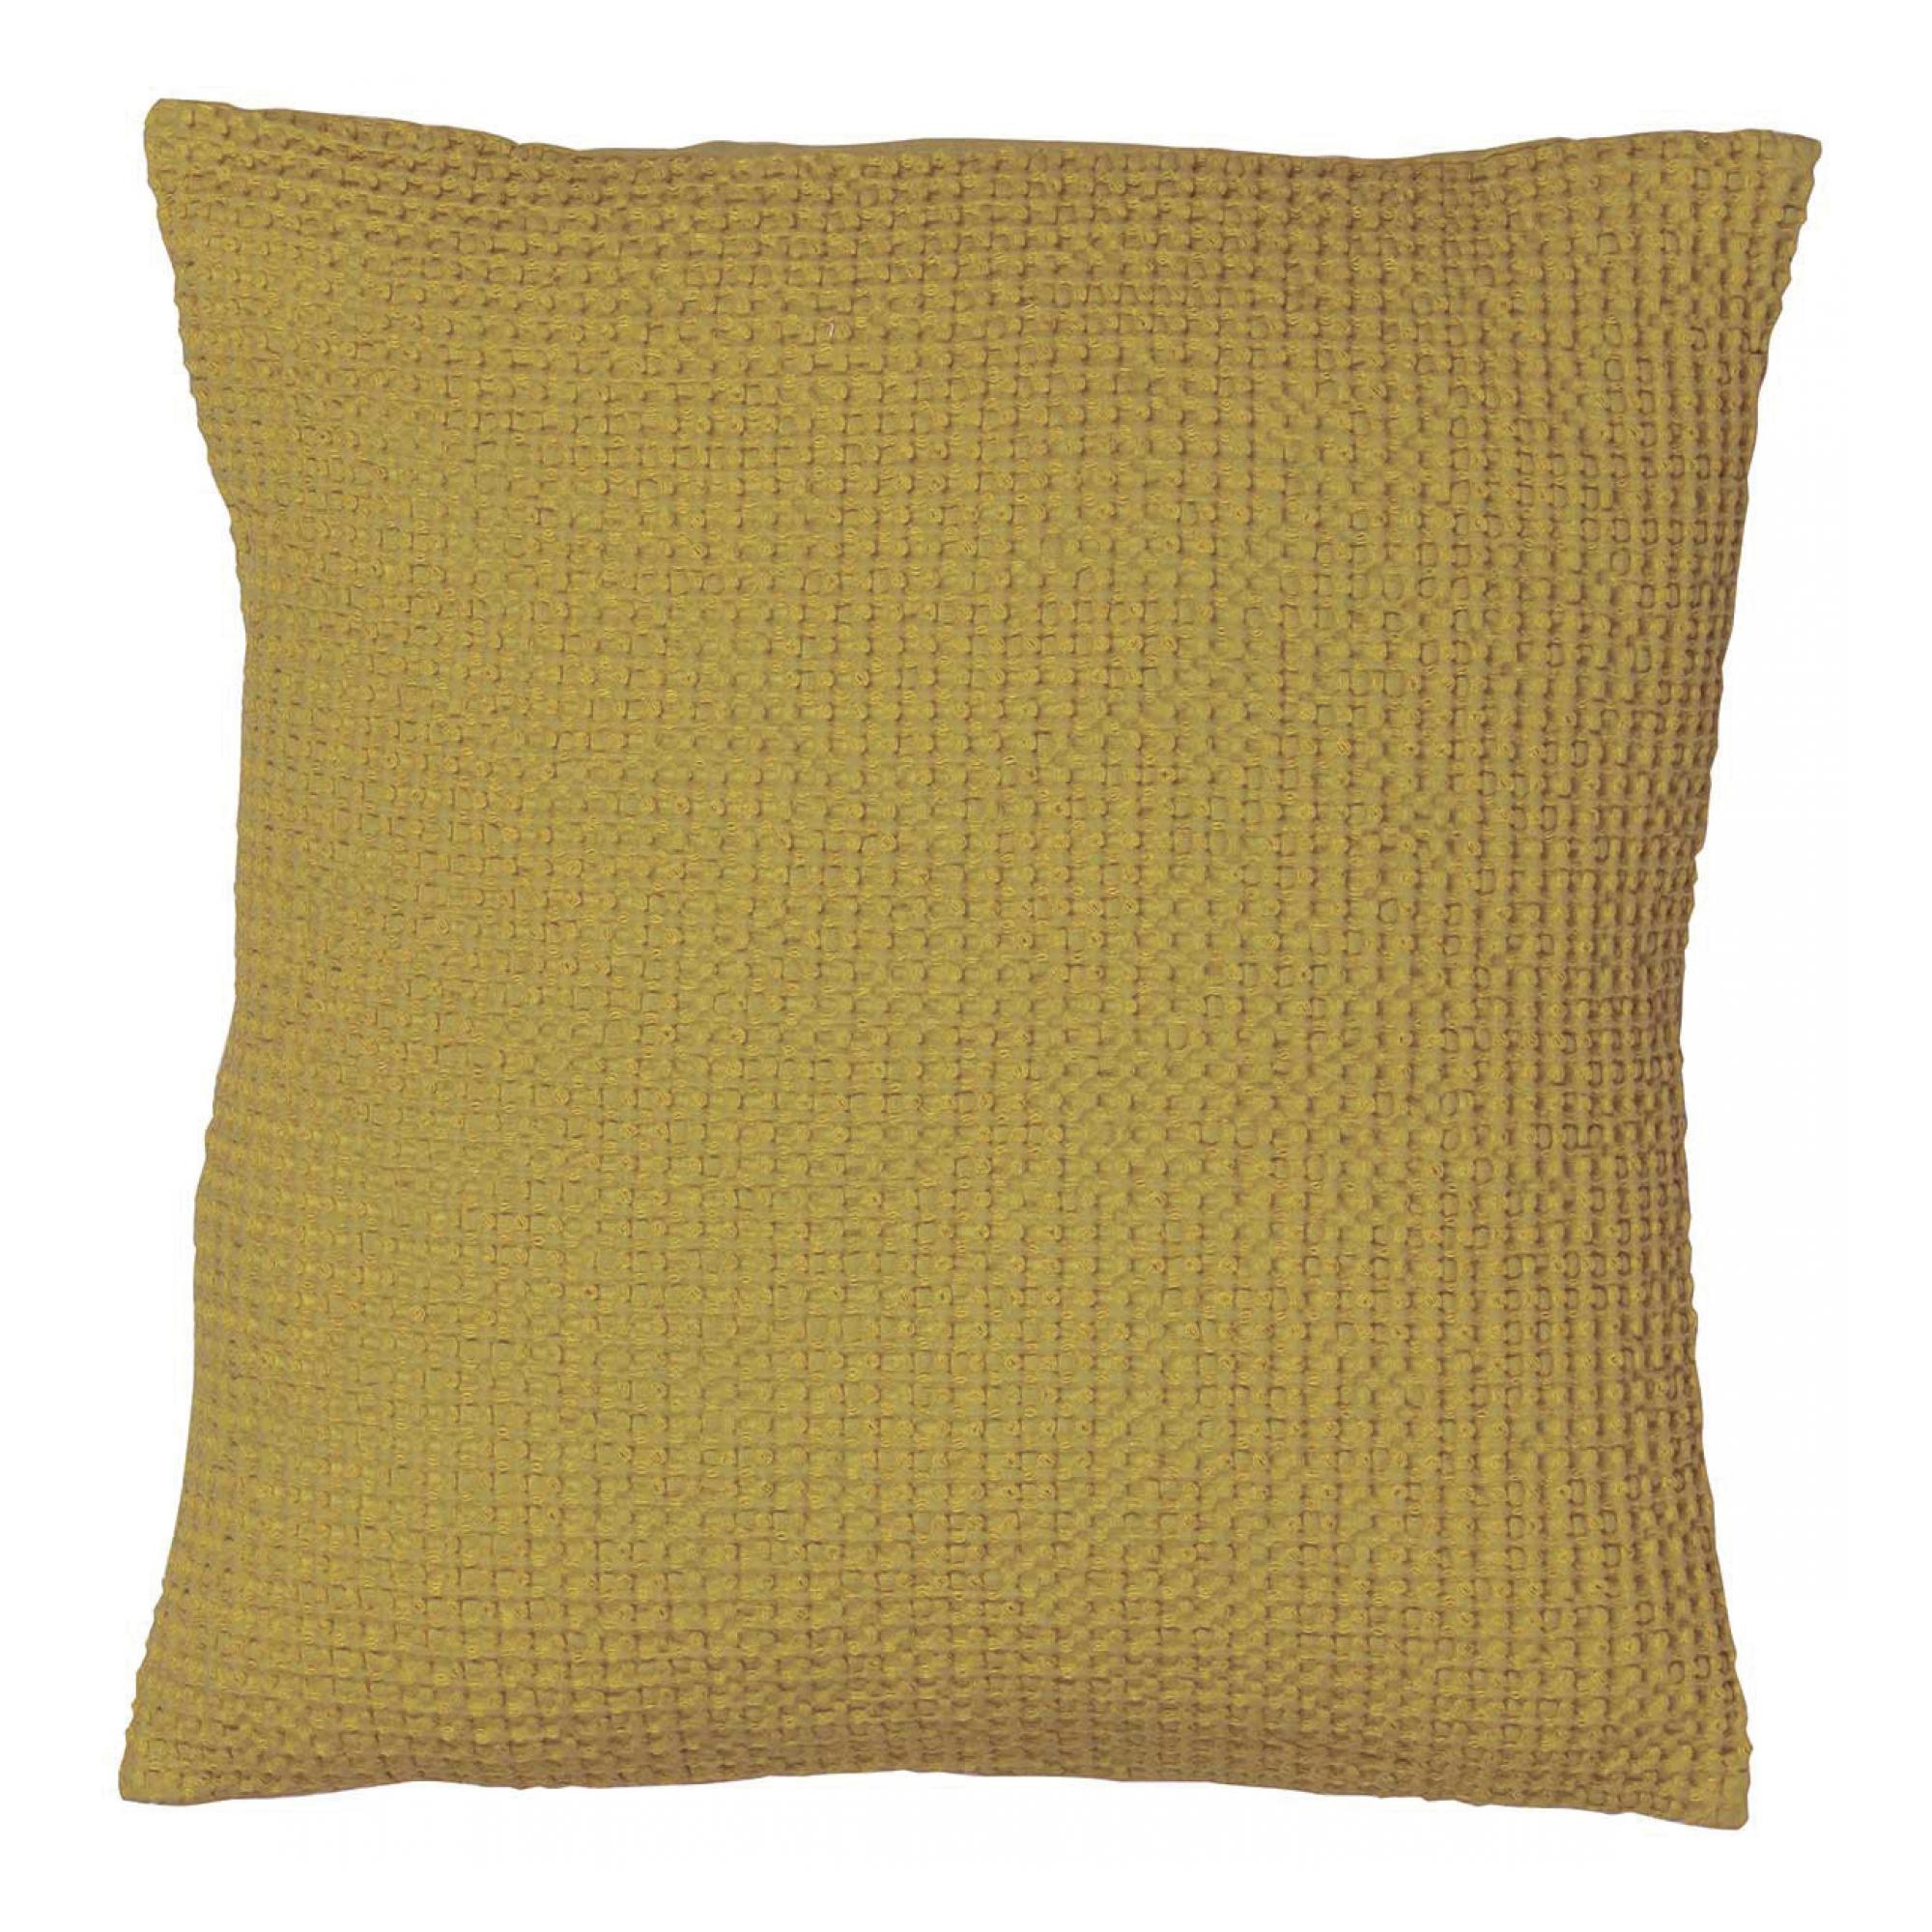 Coussin  en coton badiane 45 x 45 (photo)